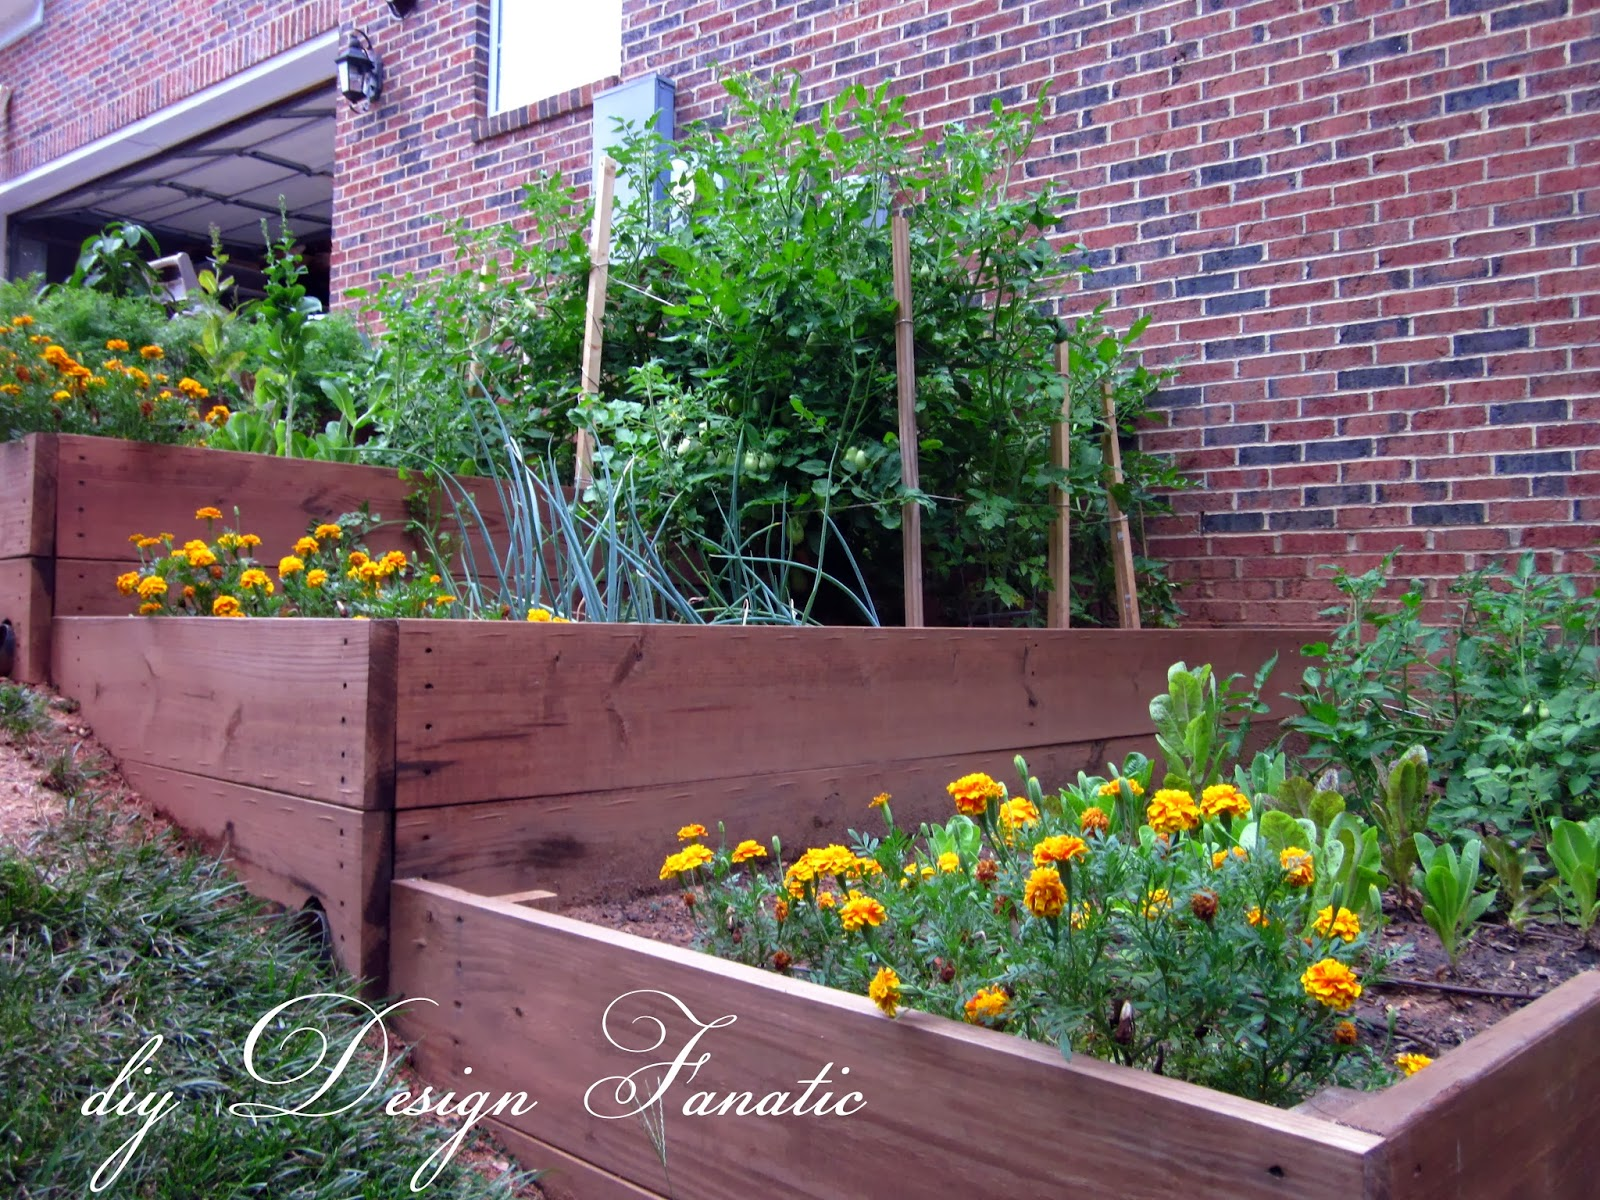 Diy design fanatic 12 ideas for landscaping on a slope for Garden design on a slope